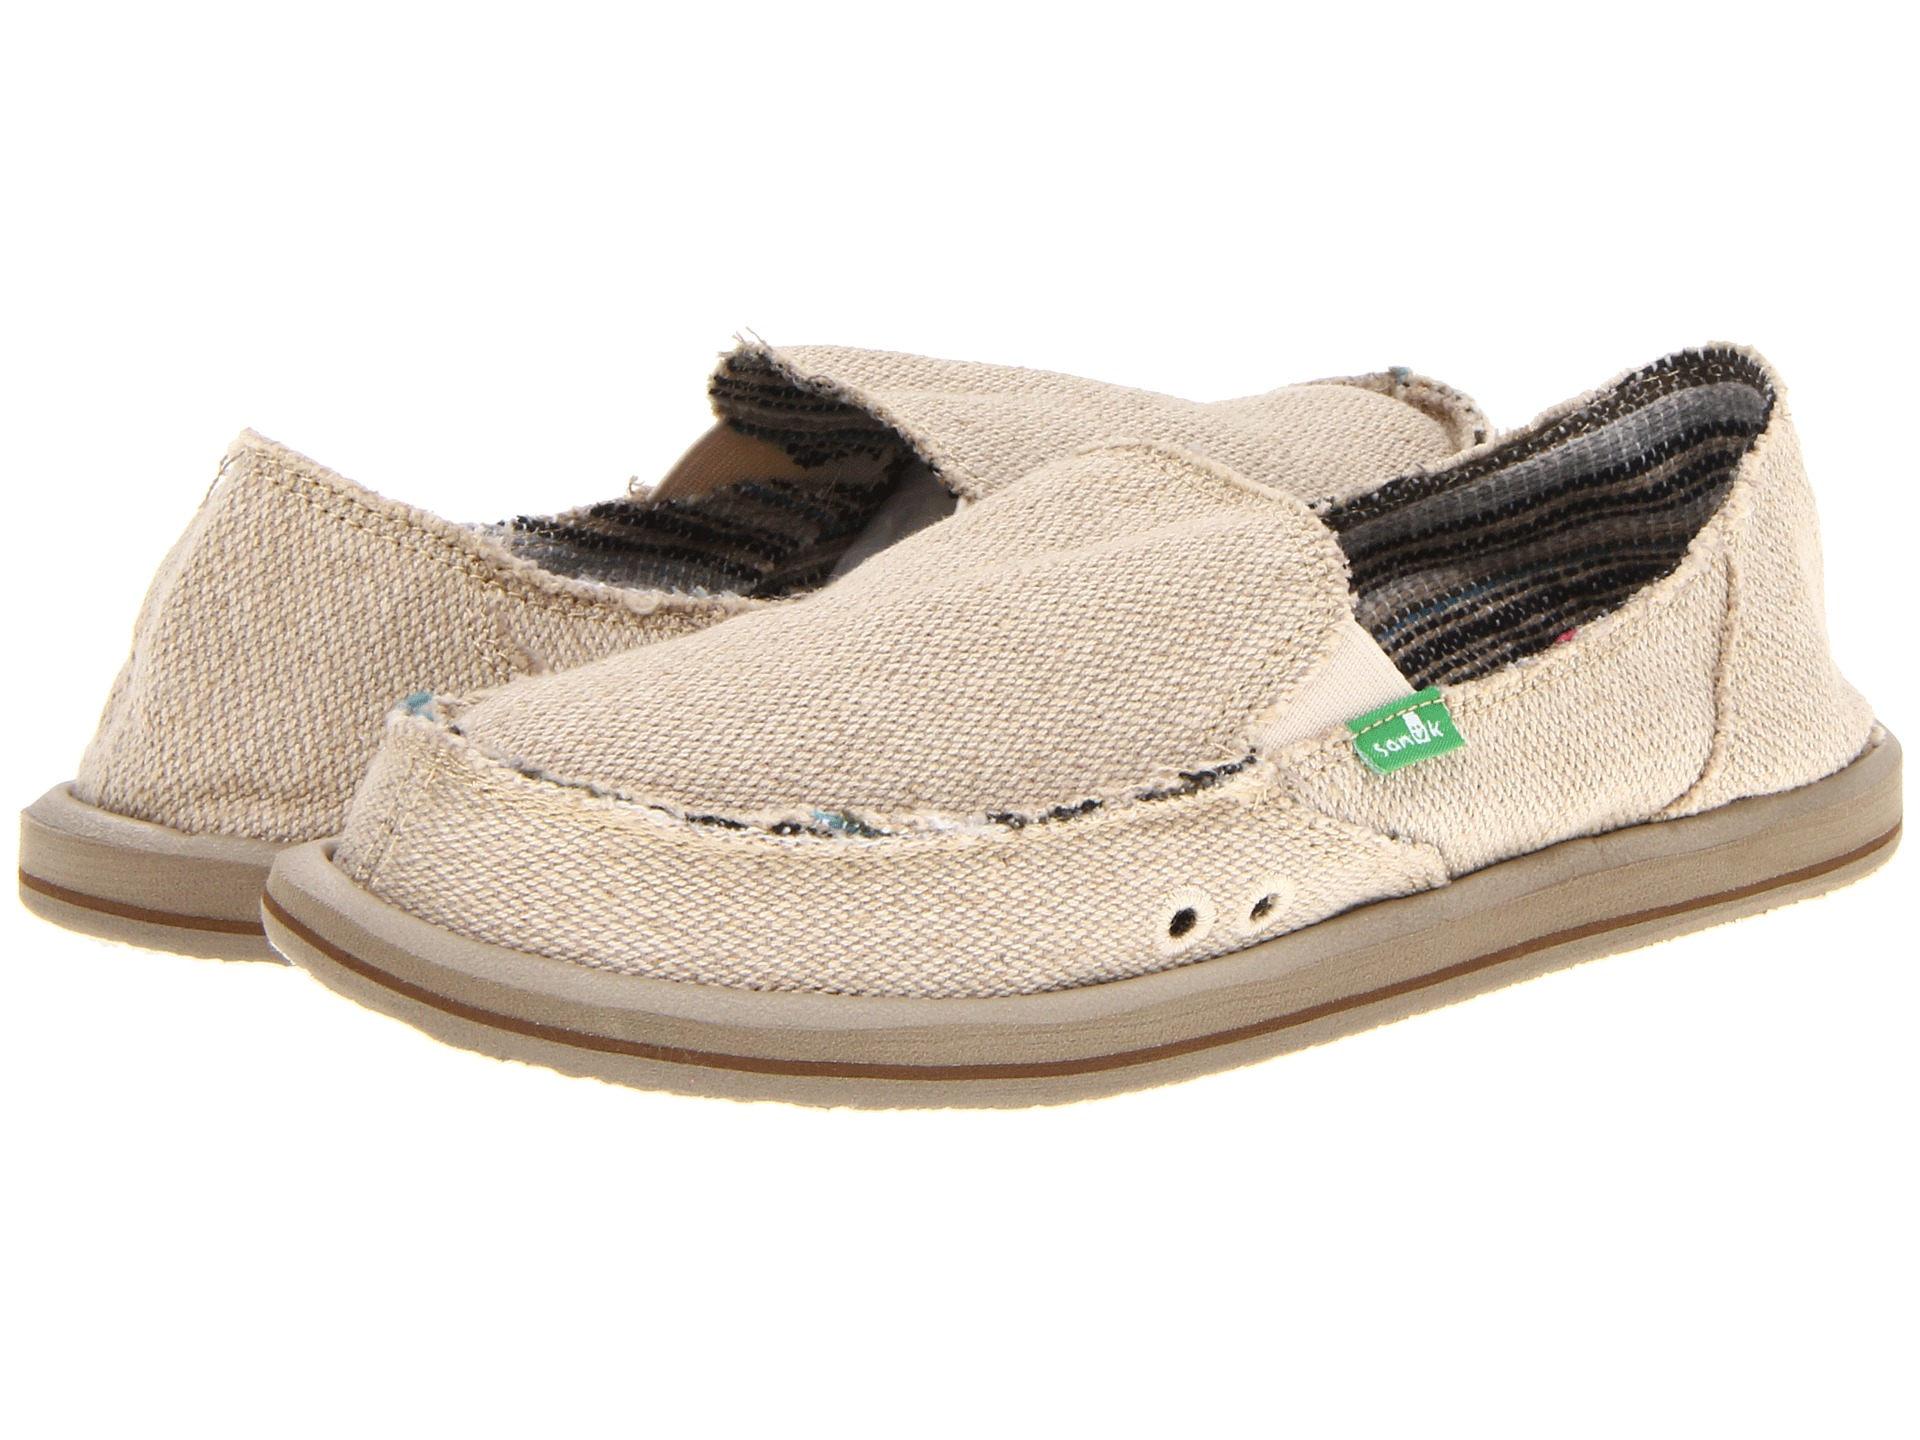 Sanuk Slip On Shoes Weight